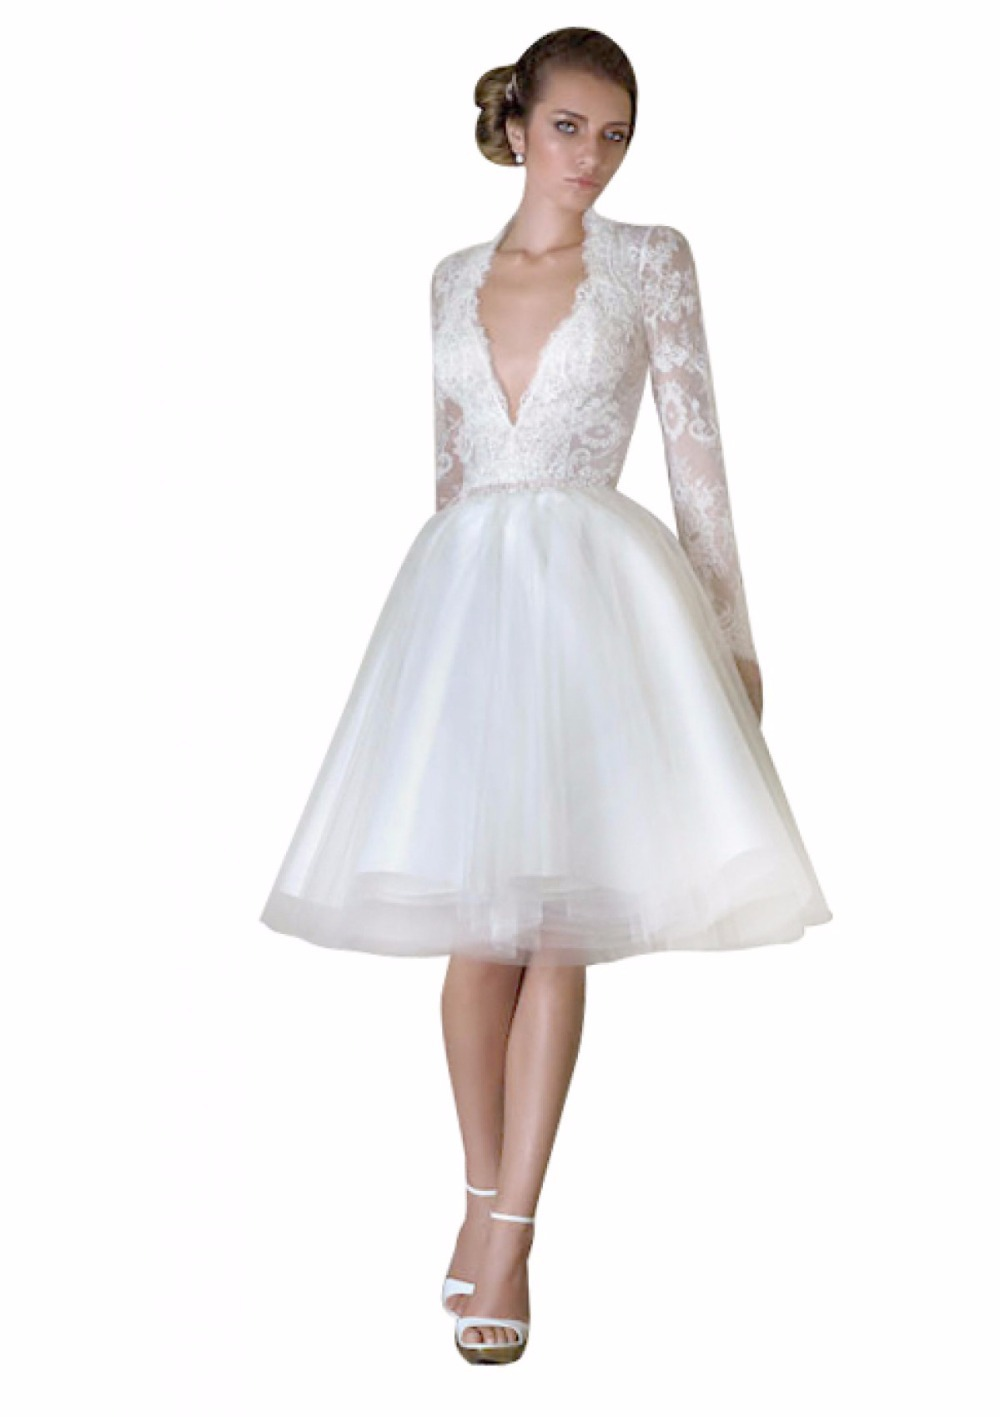 Vintage Lace Cap Sleeves Short Lace Wedding Dress Expensive 2016 Sereia  Vestido De Noiva-in Wedding Dresses from Weddings   Events on  Aliexpress.com ... f67d1f260408